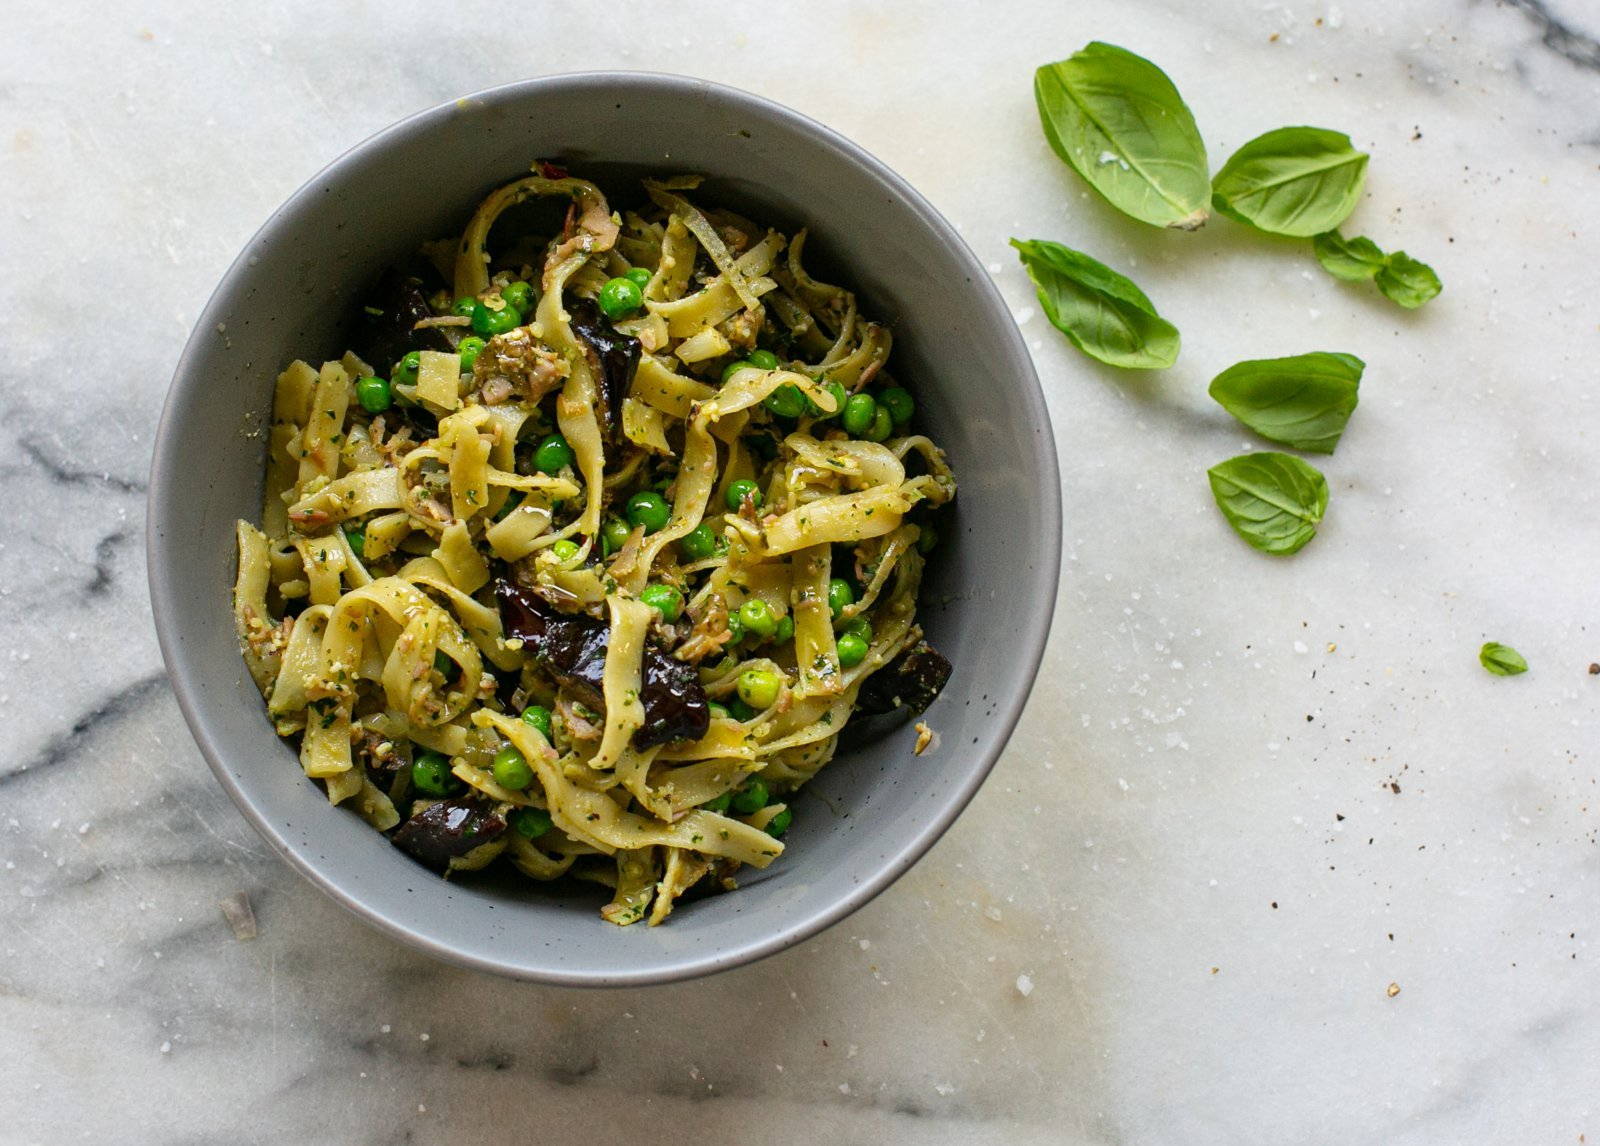 Freshly served aubergine pesto pasta in a bowl